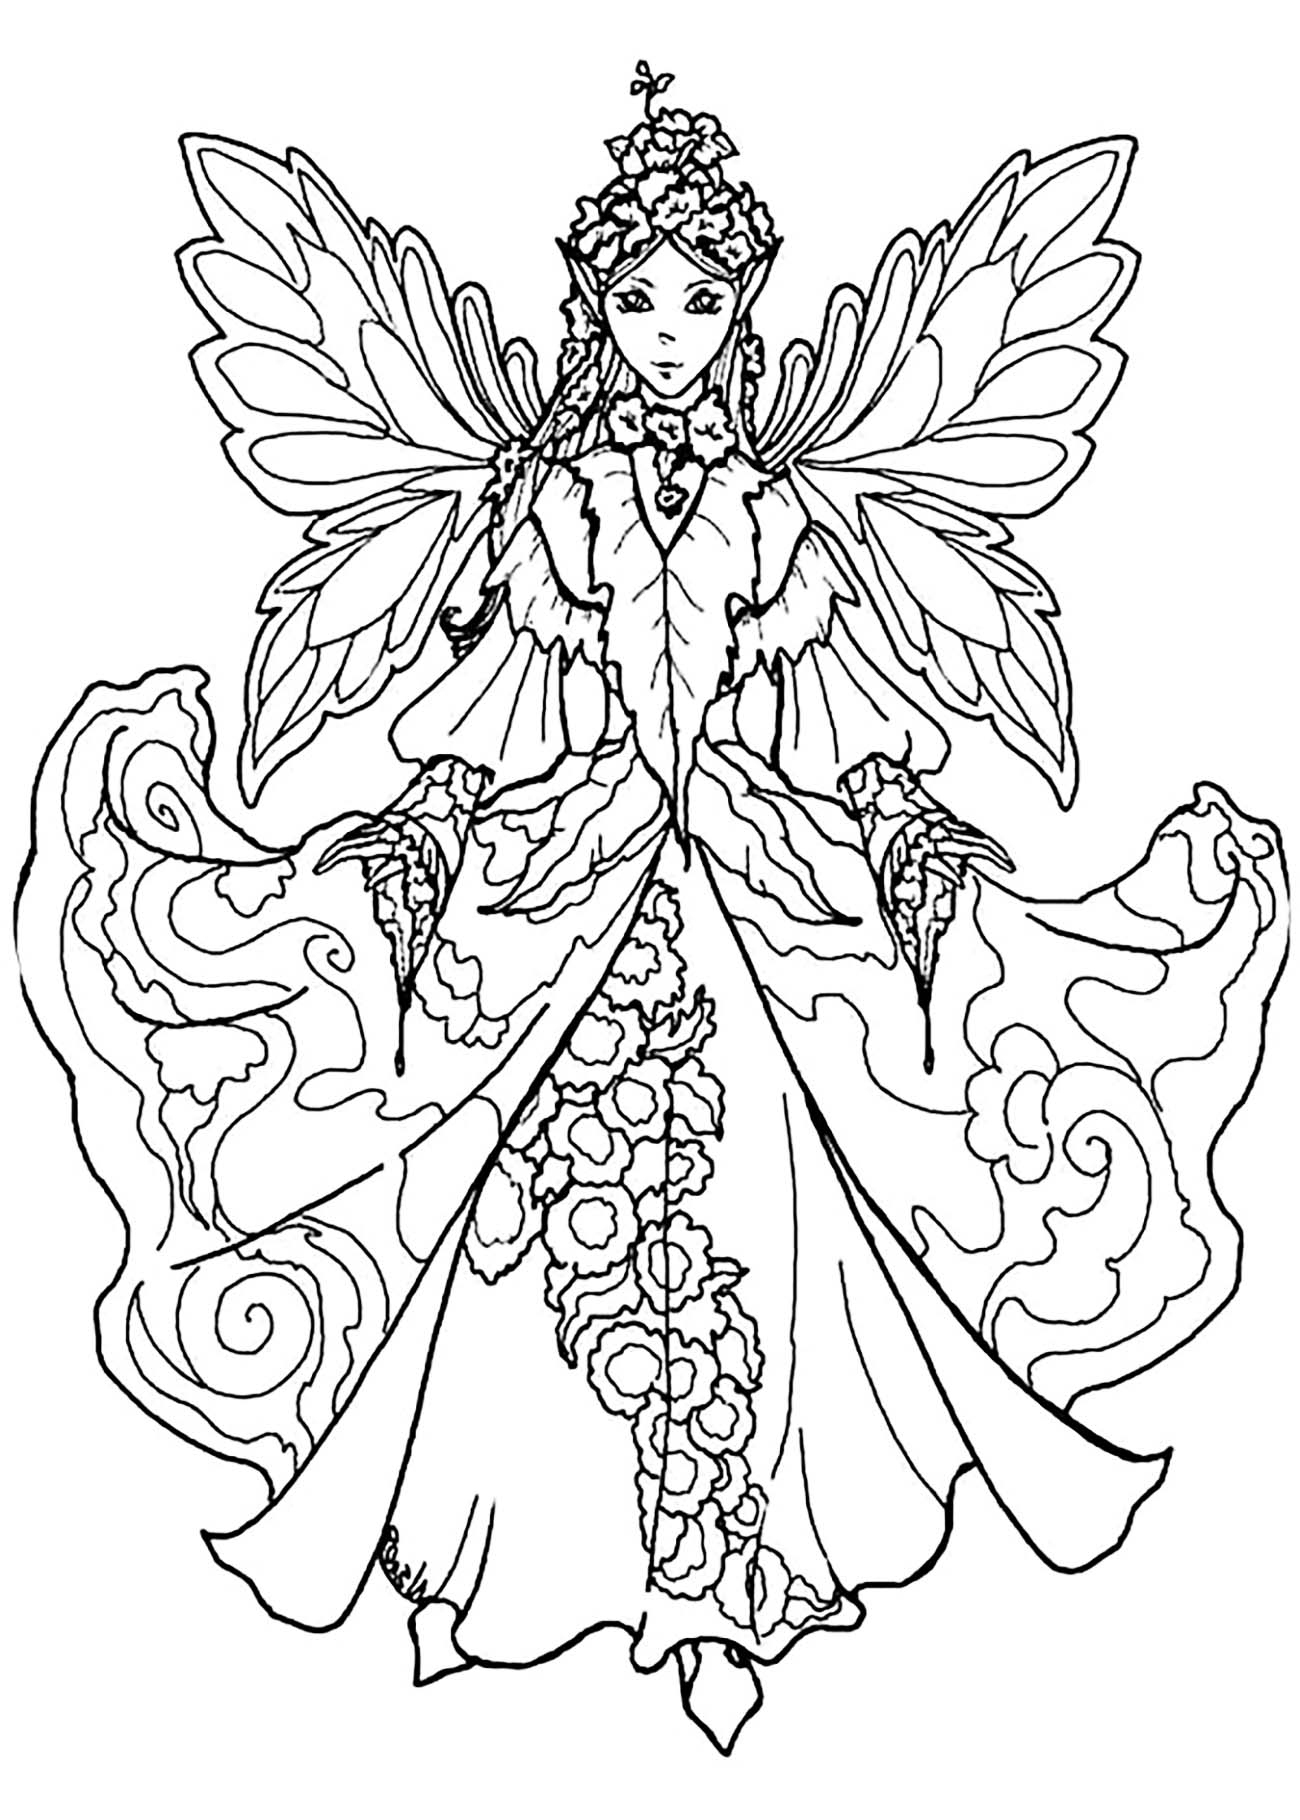 Fairy - Coloring Pages For Adults pour Mandala Fée